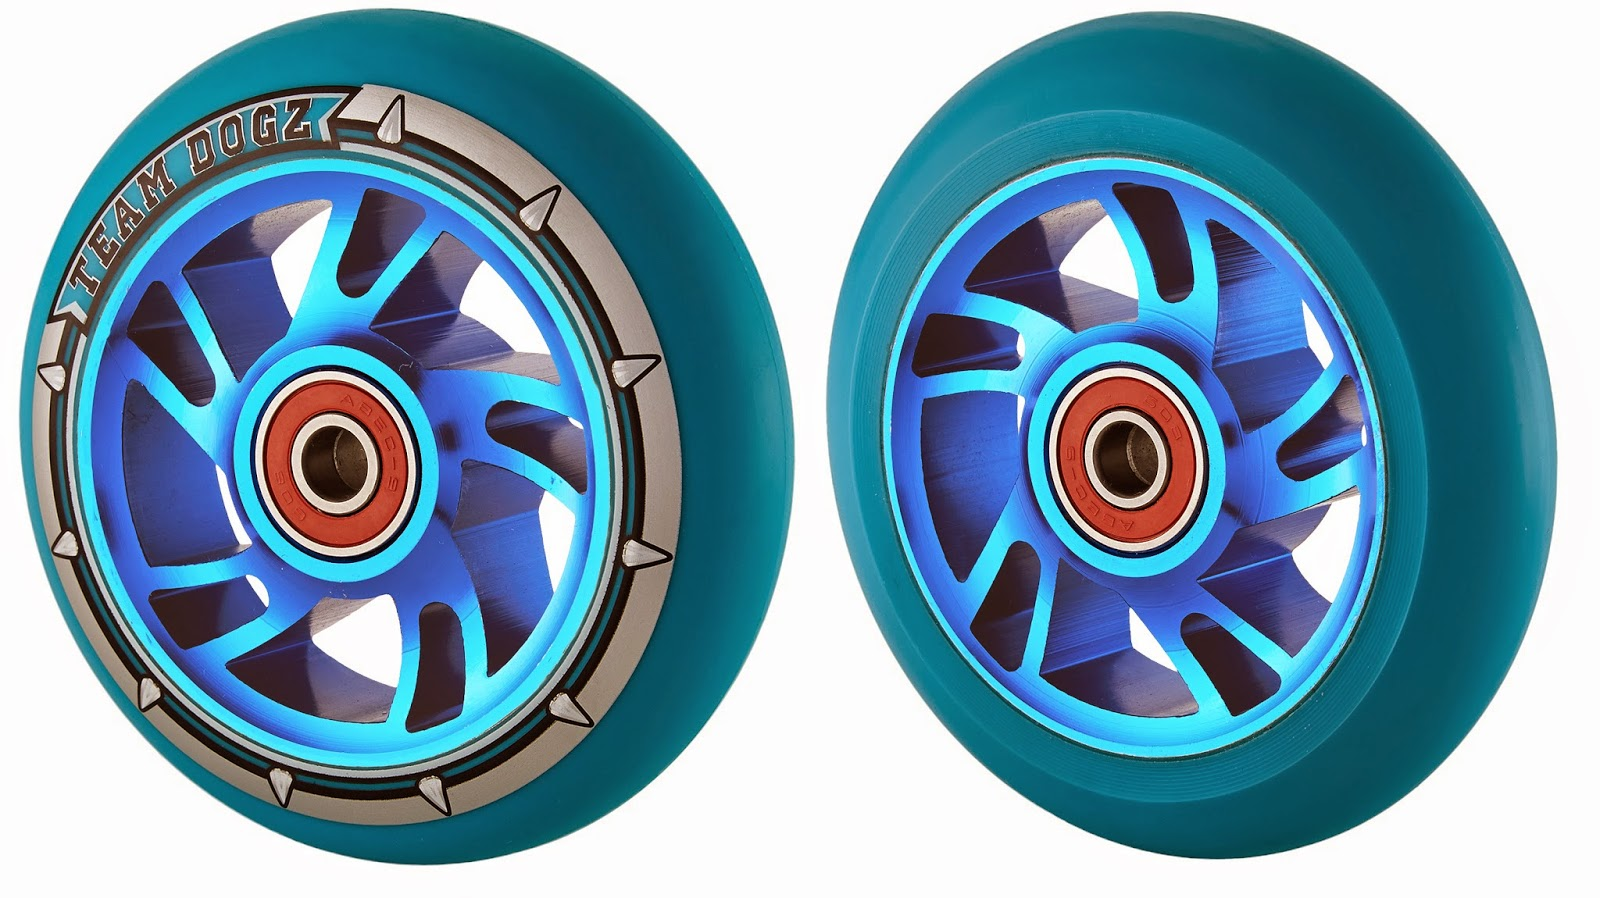 http://www.team-dogz.co.uk/product/100mm-alloy-blue